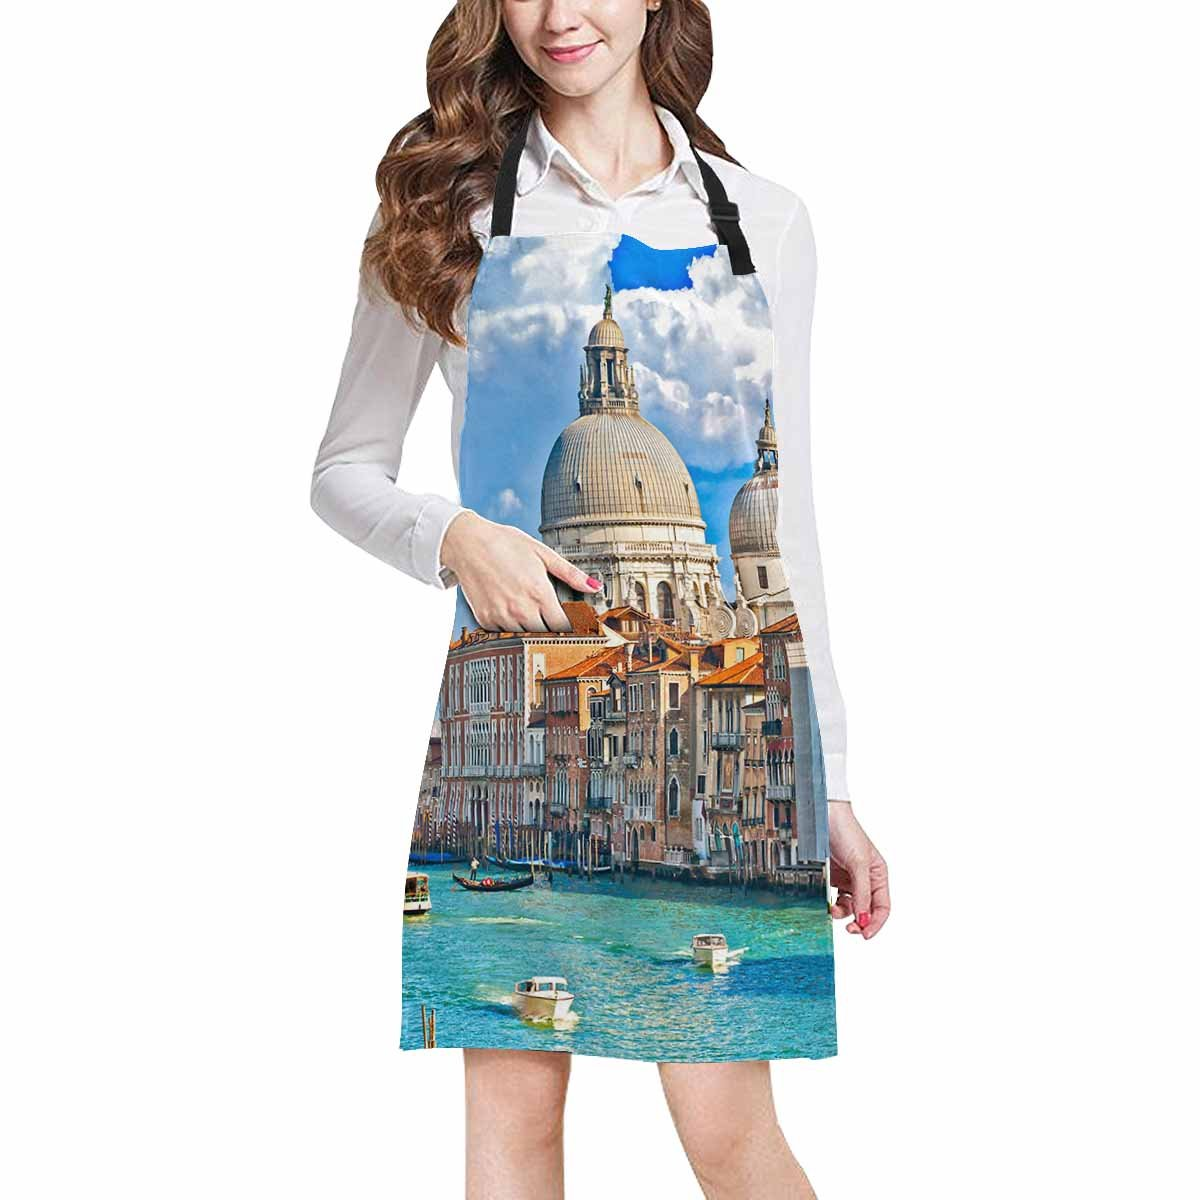 InterestPrint Gondola in Canal Grande Basilica di Santa Maria della Salute in Venice Chef Kitchen Apron, Adjustable Strap & Waist Ties, Perfect for Cooking, Baking, Barbequing, Large Size